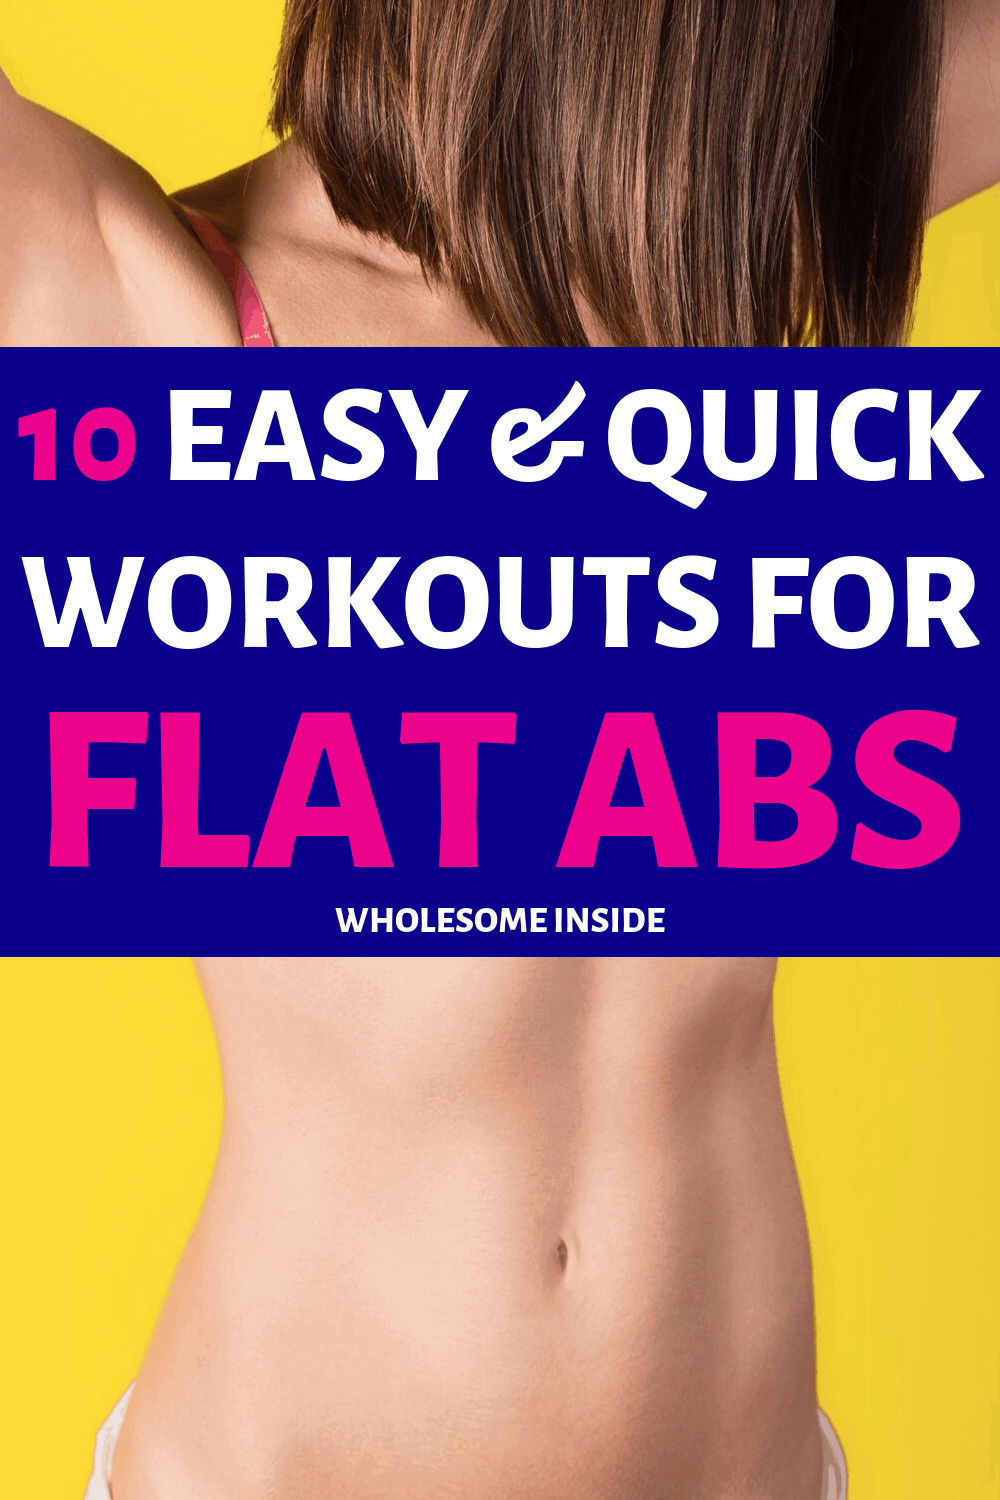 Workouts to get Flat Abs fast!